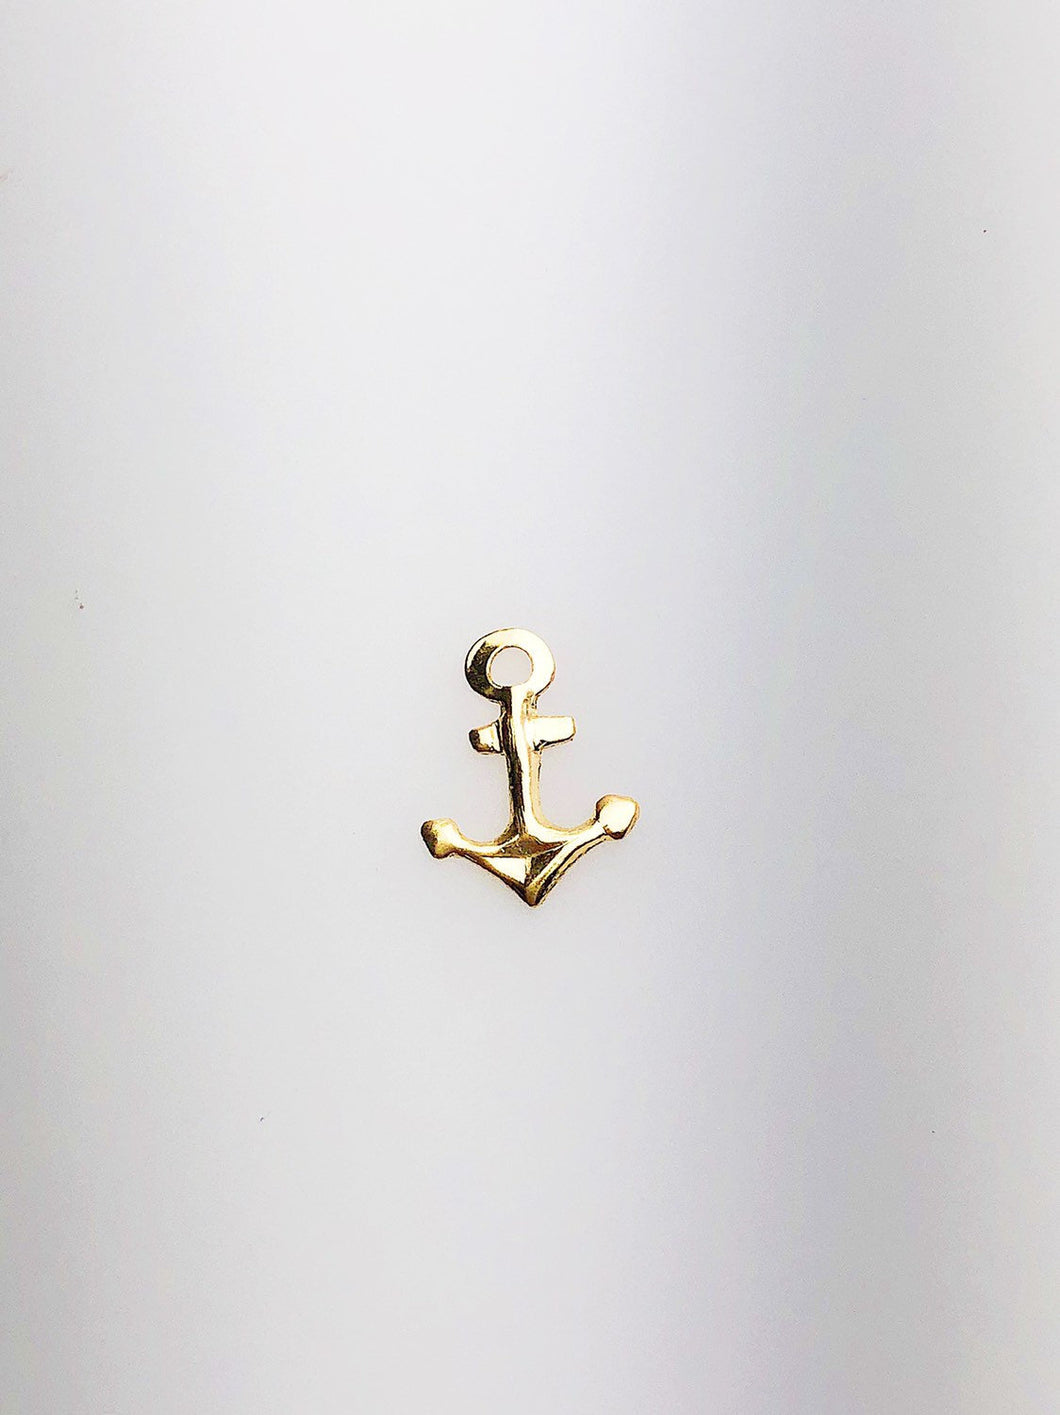 14K Gold Fill Anchor Charm w/ Ring, 8.0x10.3mm, Made in USA - 511